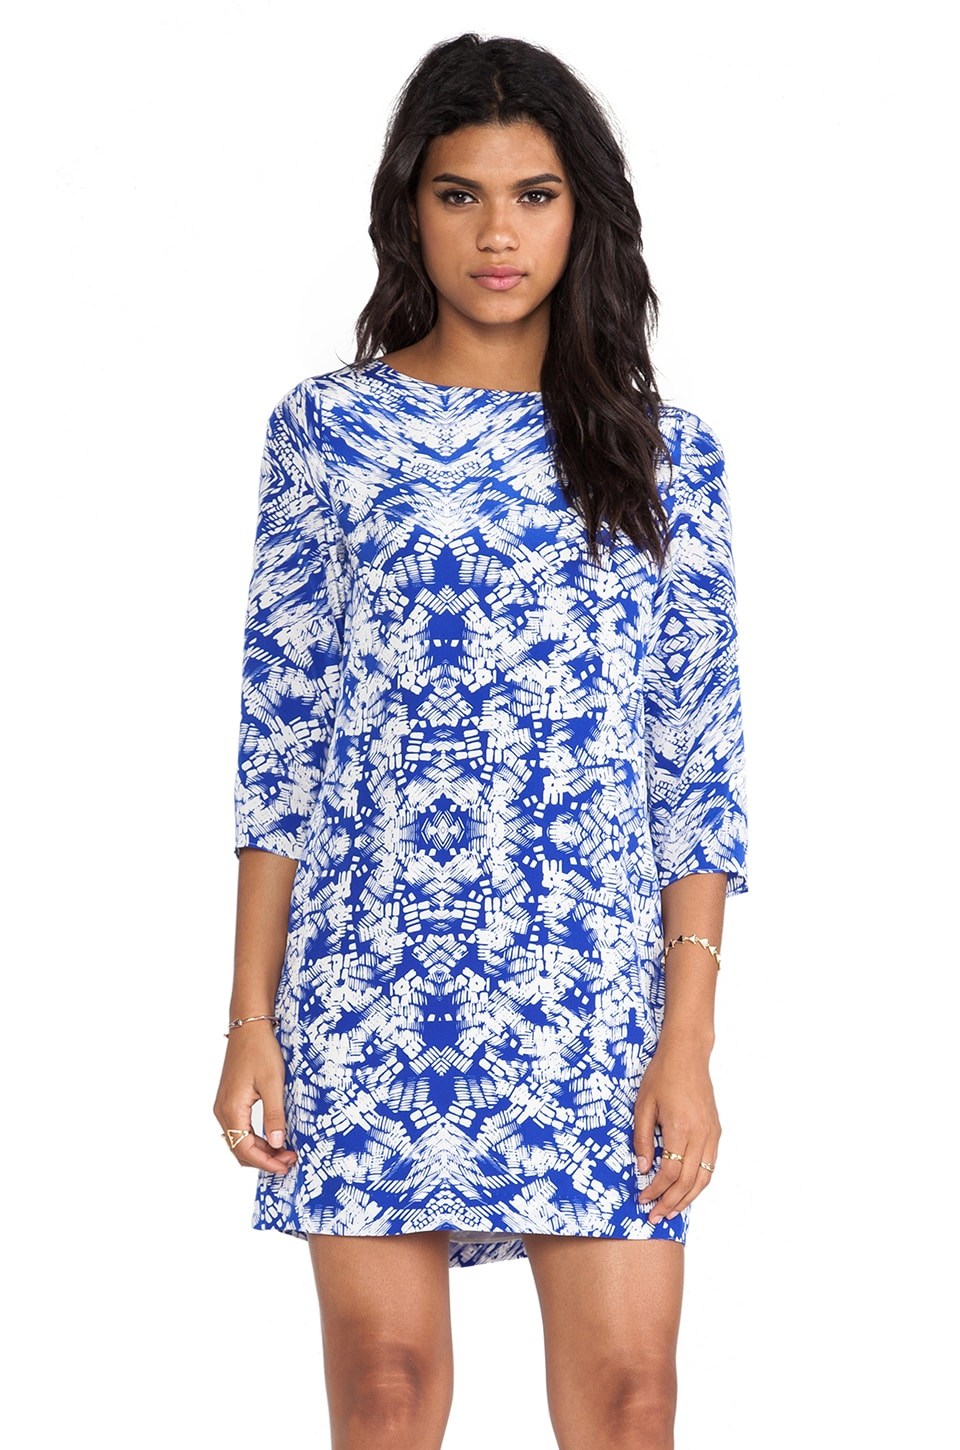 Shoshanna Kaleidoscope Print Meira Dress in Cobalt & White